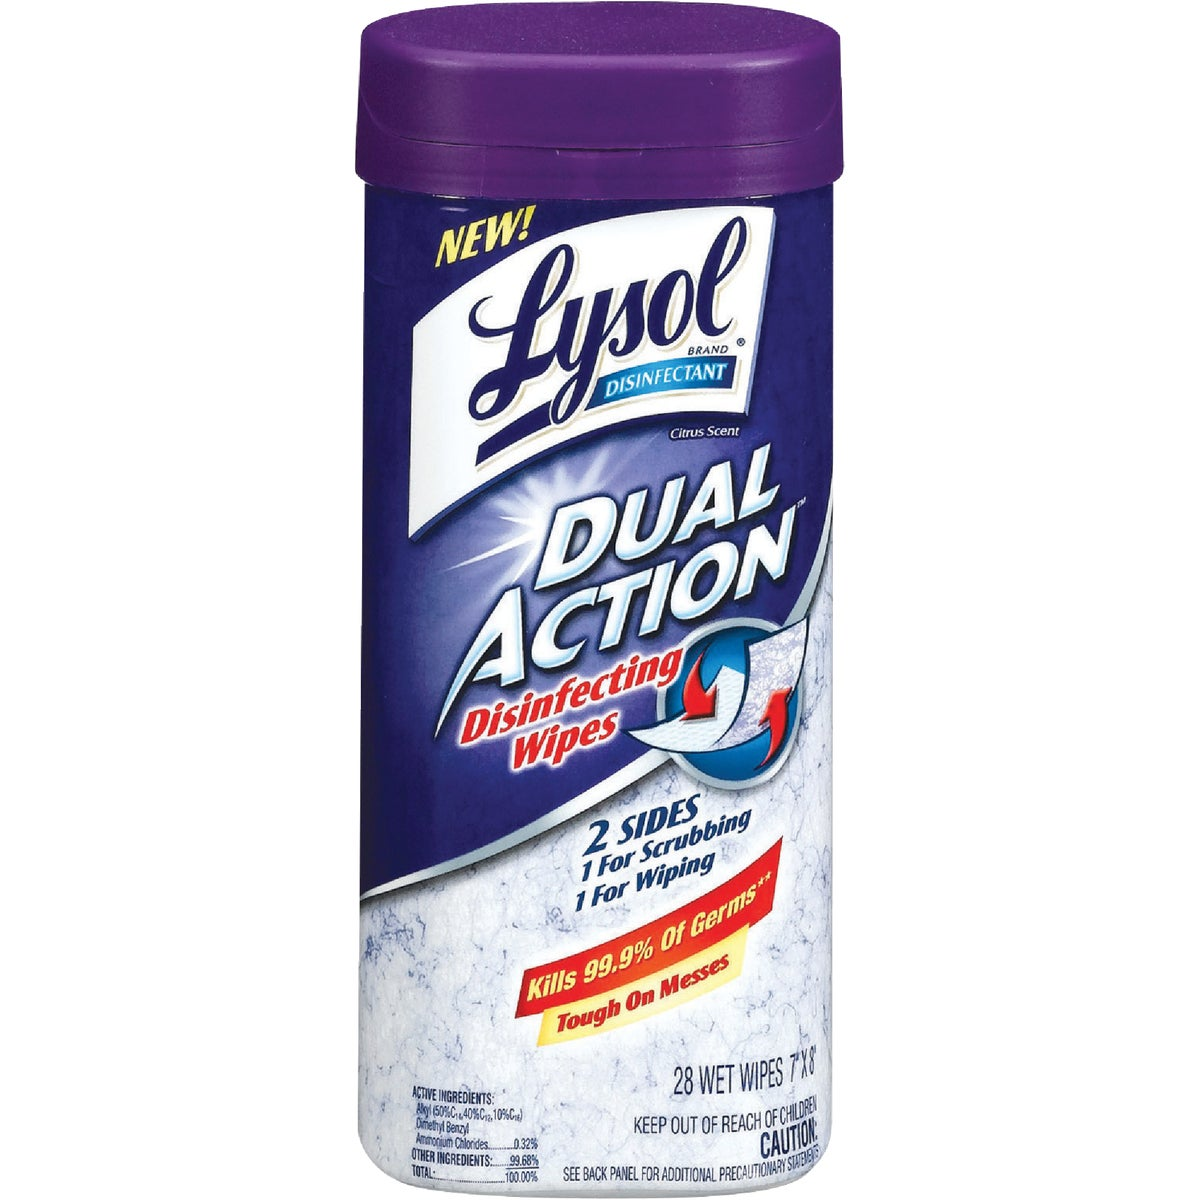 LYSOL DUAL ACTION WIPES - 1920081143 by Reckitt Benckiser